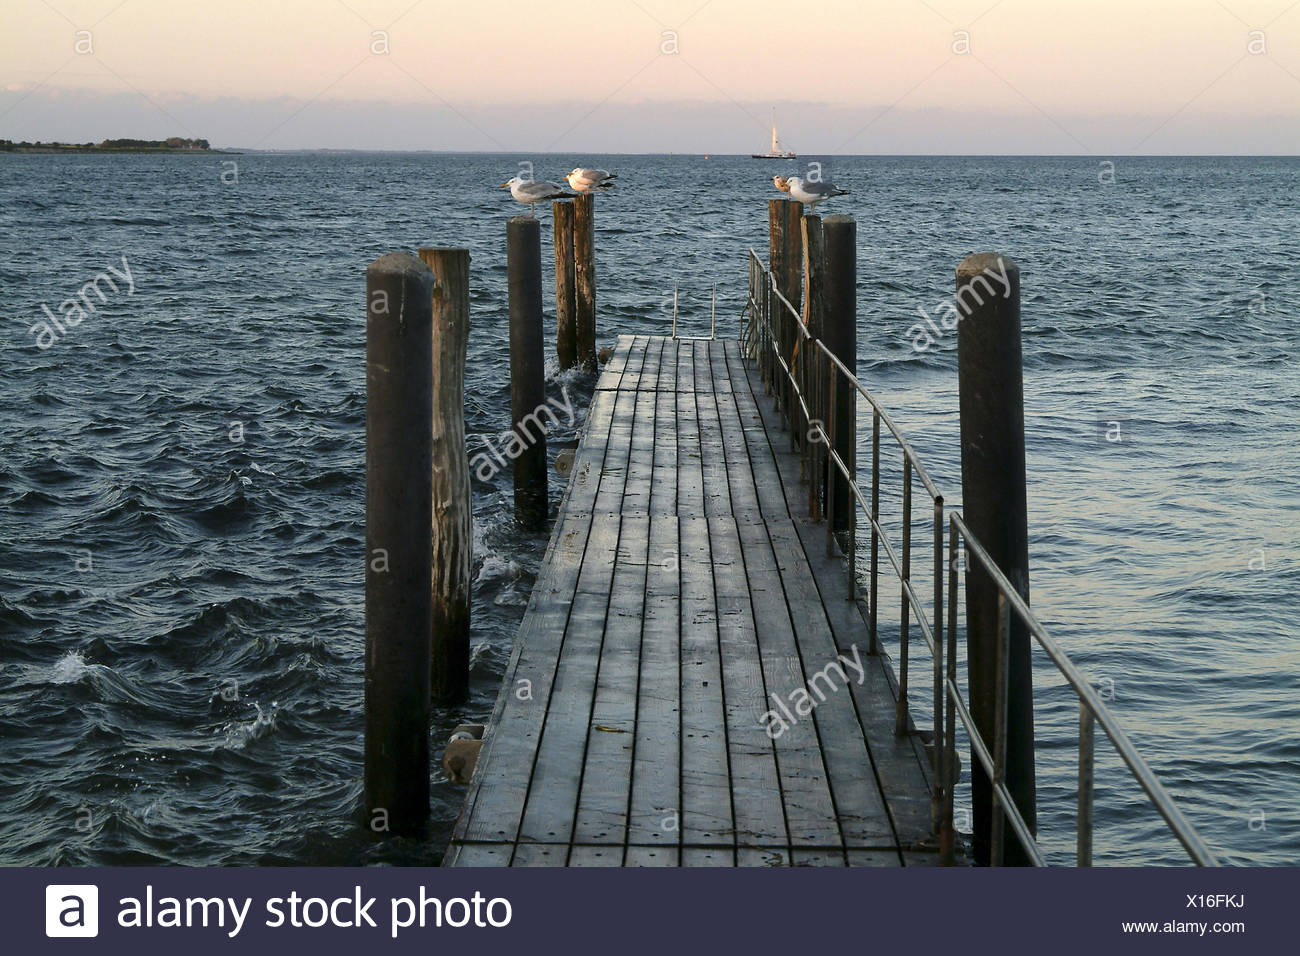 Bridge bridge Stock Photos & Bridge bridge Stock Images - Page 10 ...